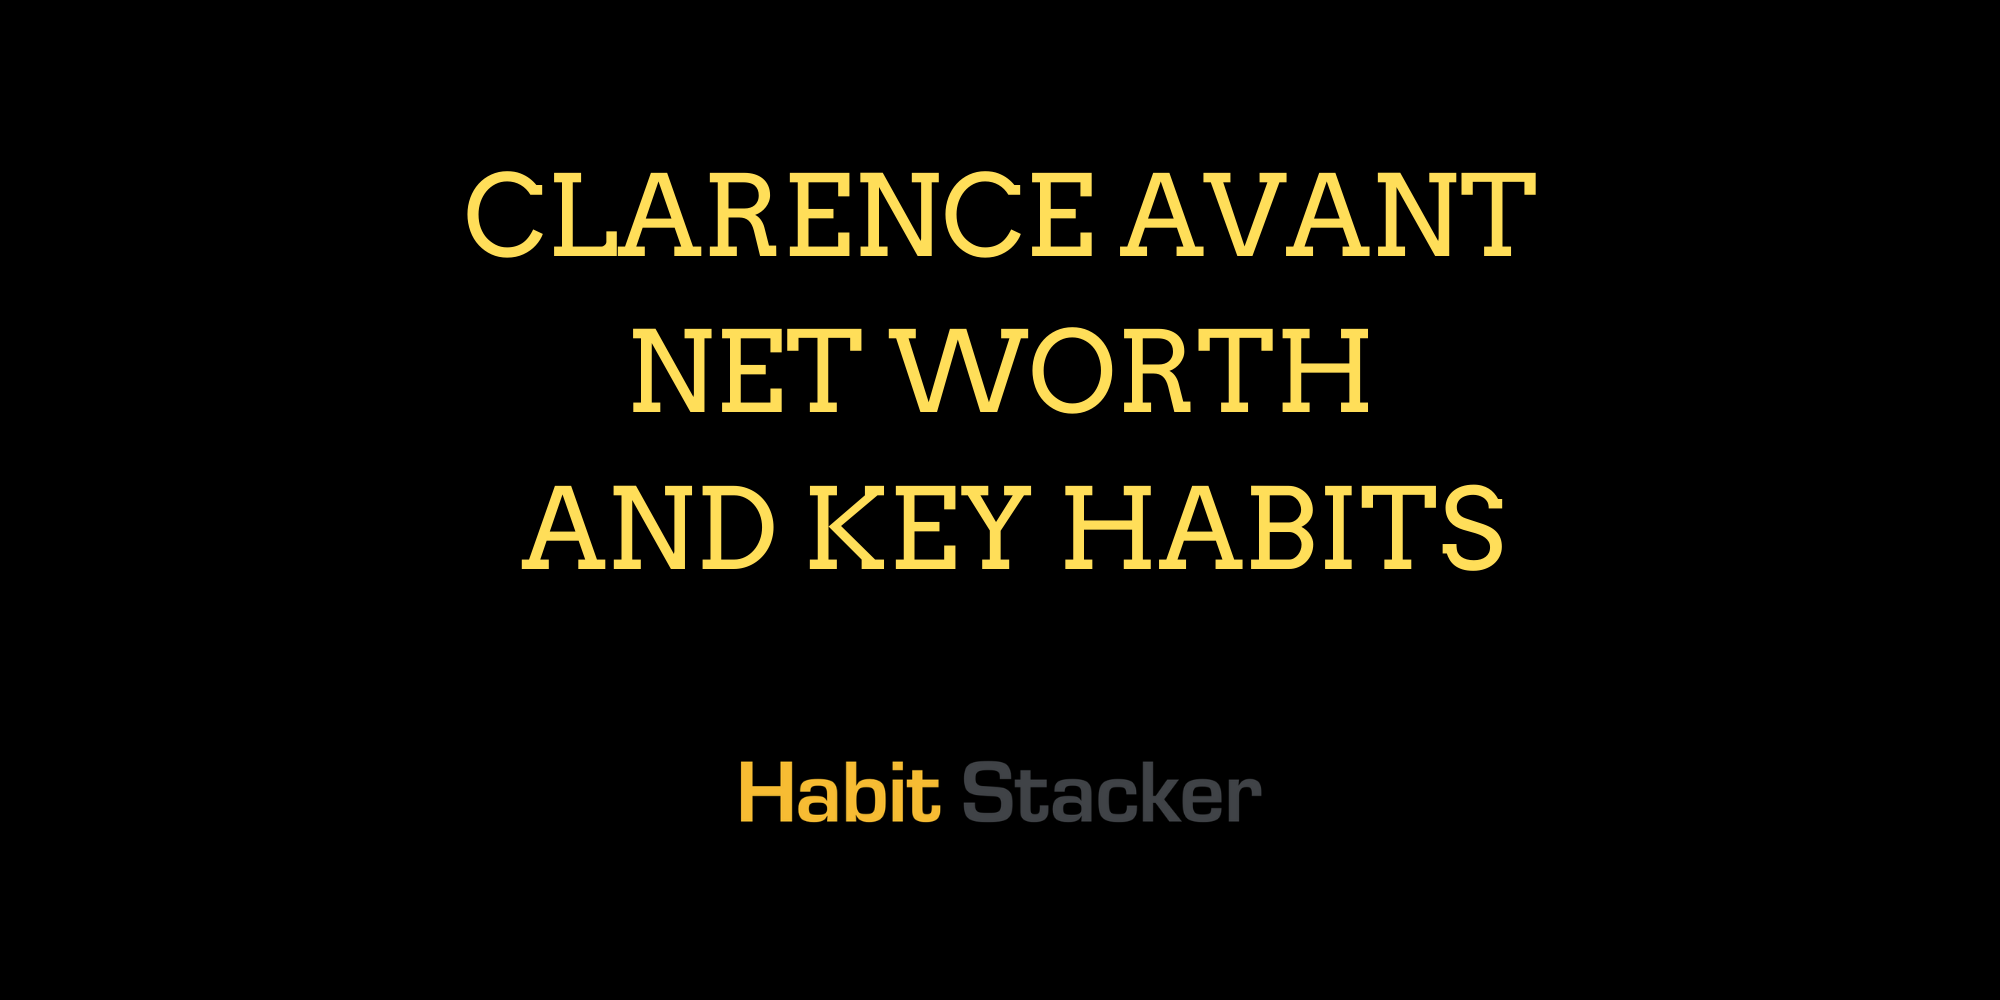 Clarence Avant Net Worth and Key Habits